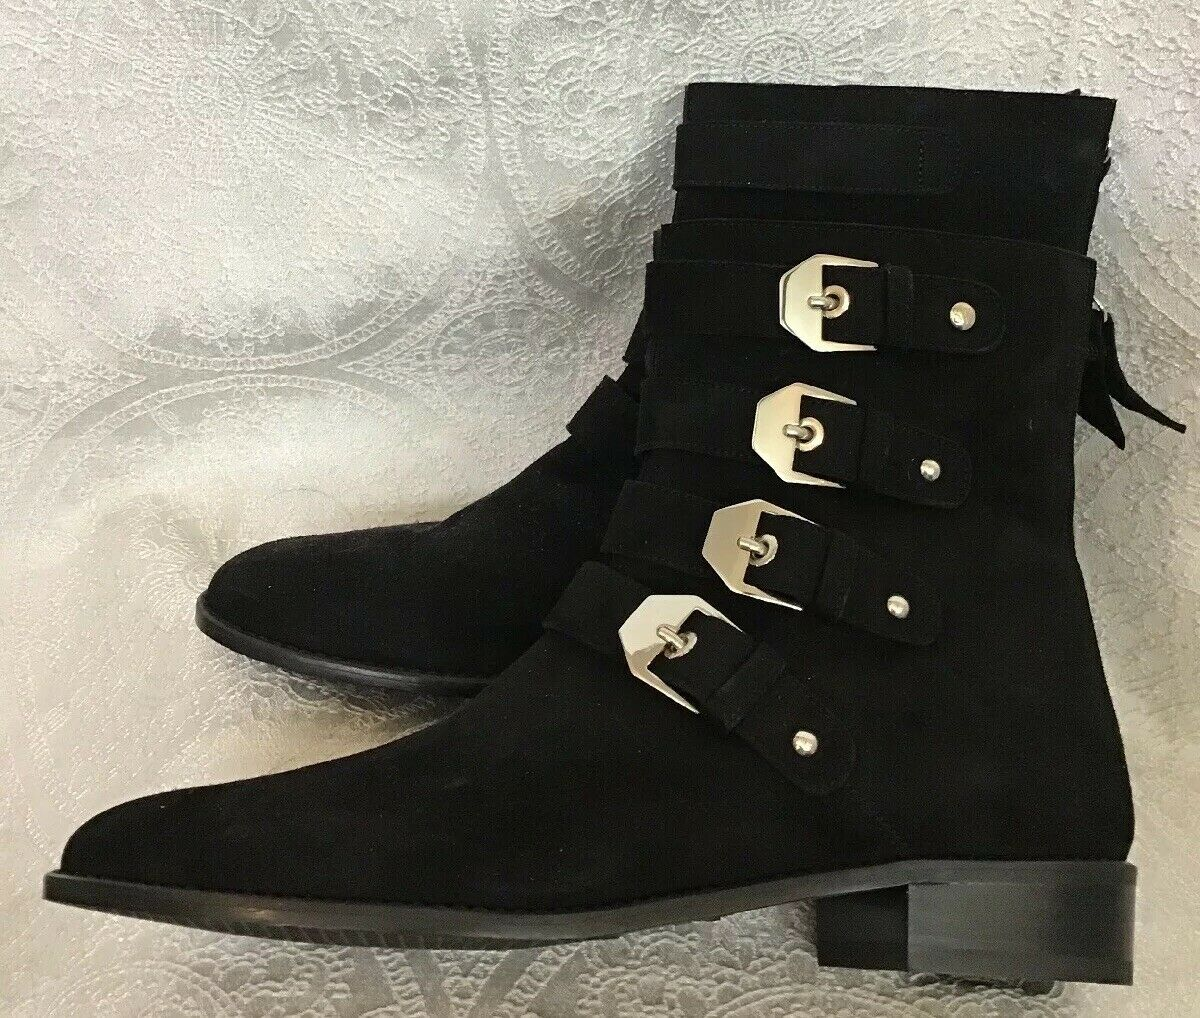 Stuart Weitzman jitterbug Black suede Ankle boot 4 buckles zip back size 7 New